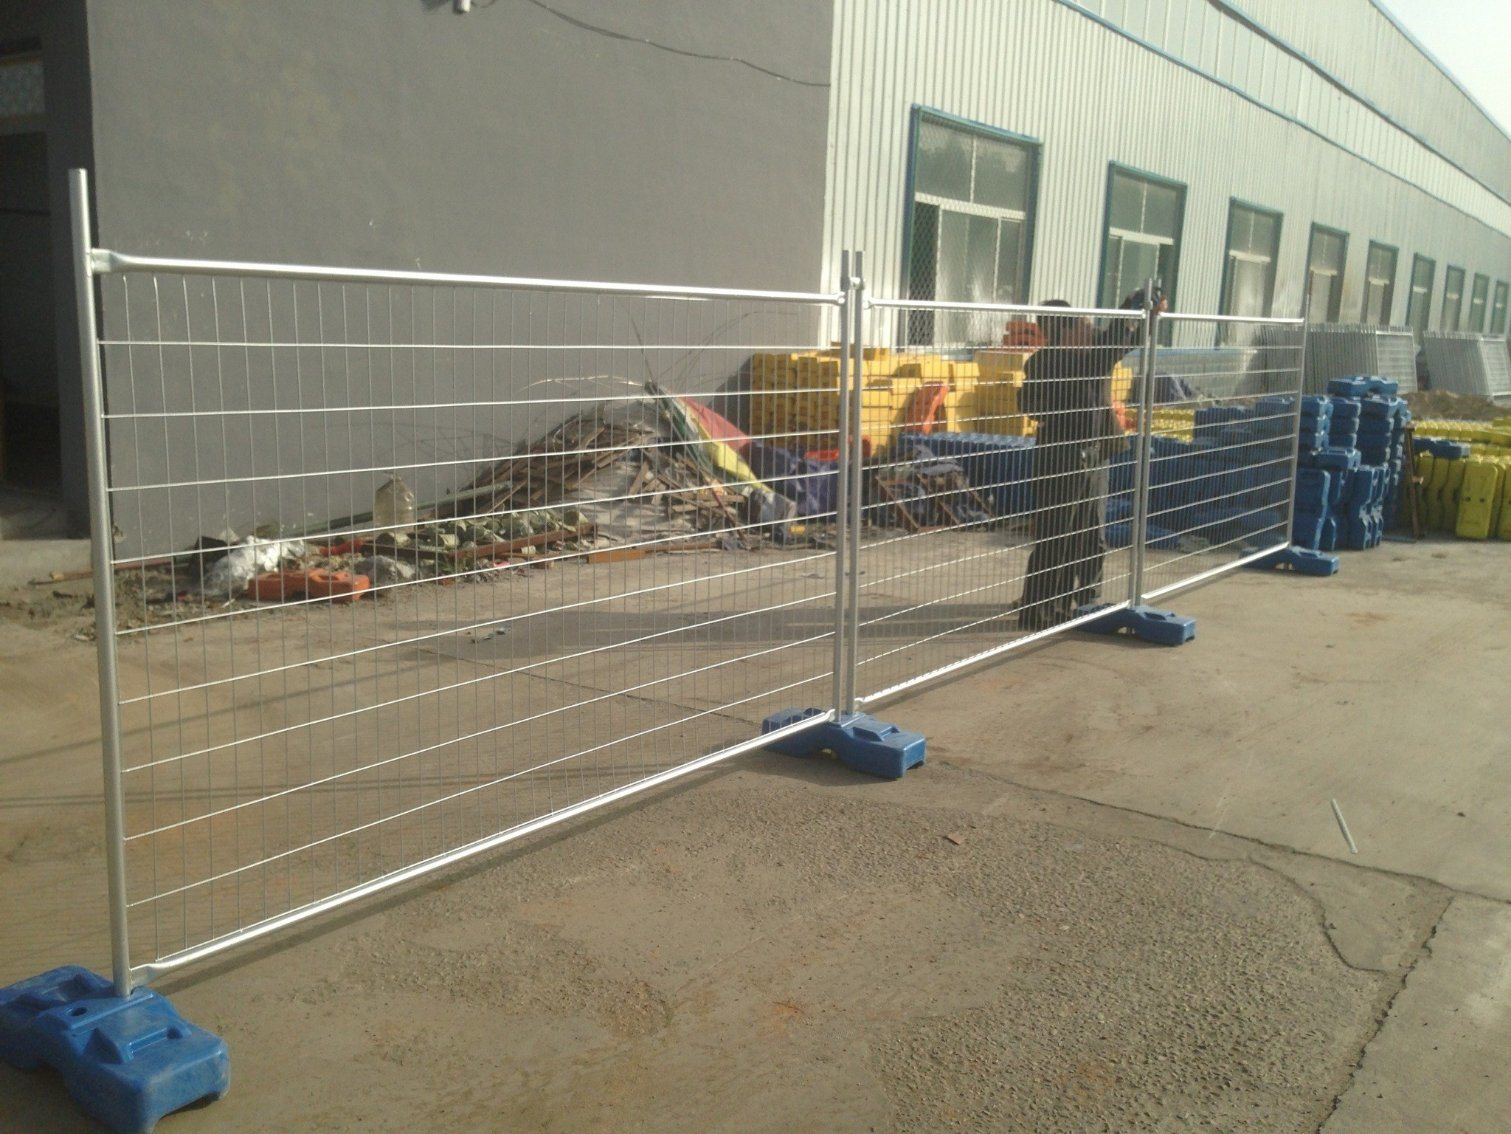 Temporary Hoarding Fence Hot Dipped Galvanized Steel Materials 2100mm X 2400mm for Oceania